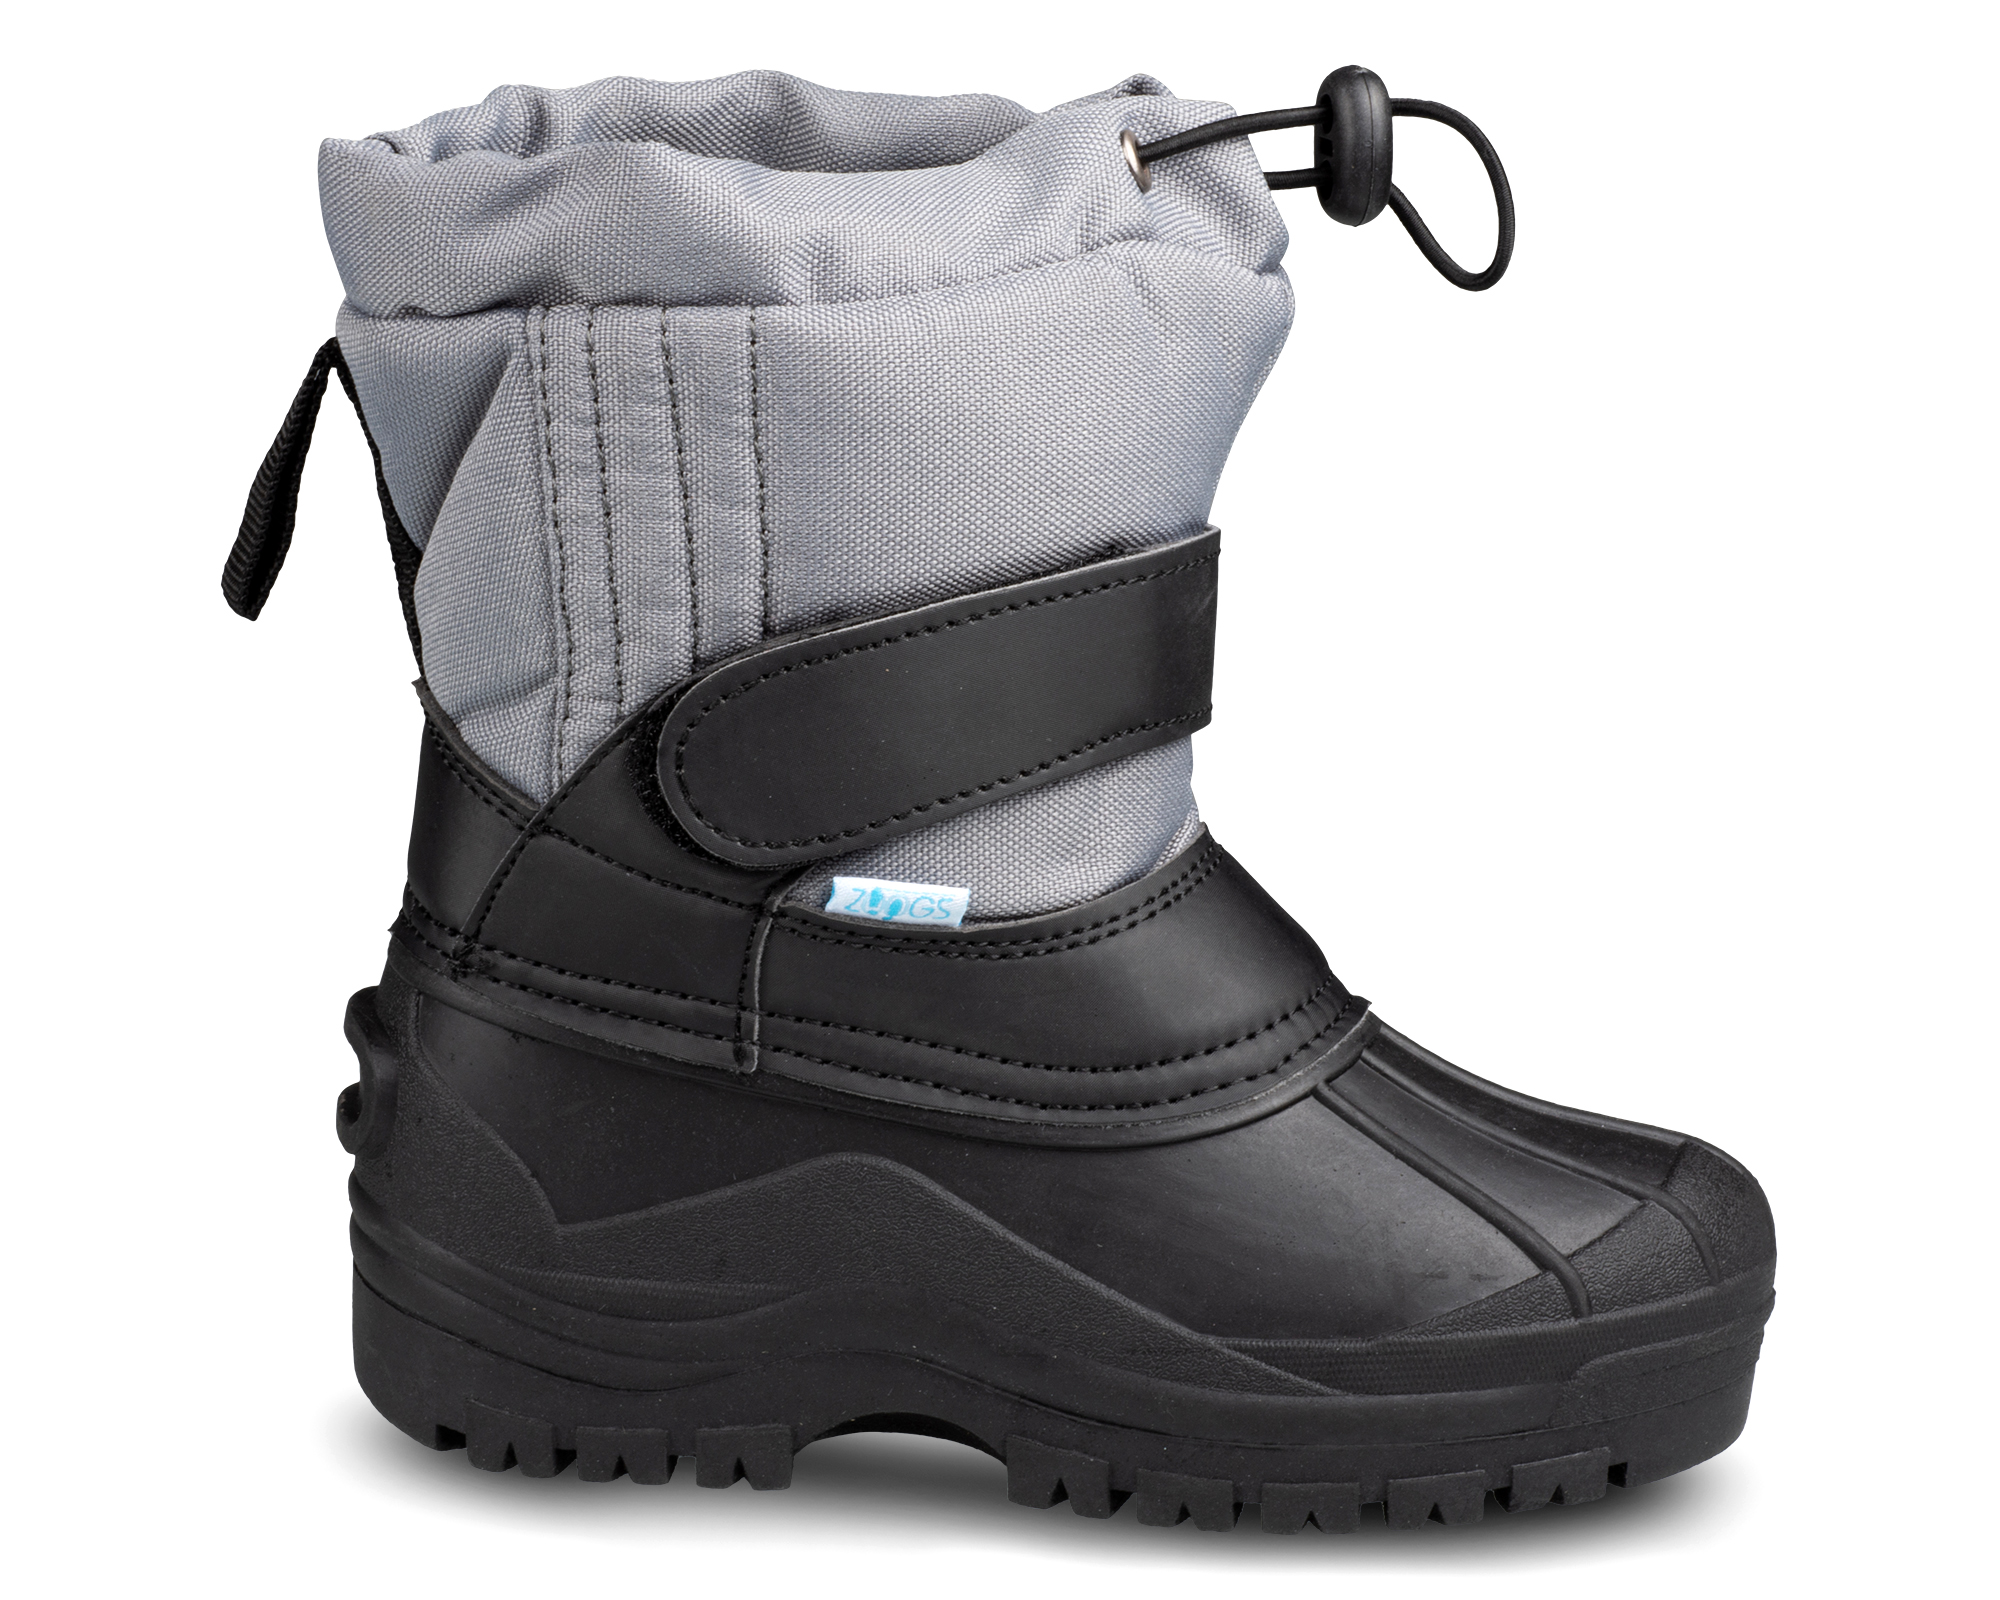 ZOOGS - ZOOGS Kids Snow Boots for